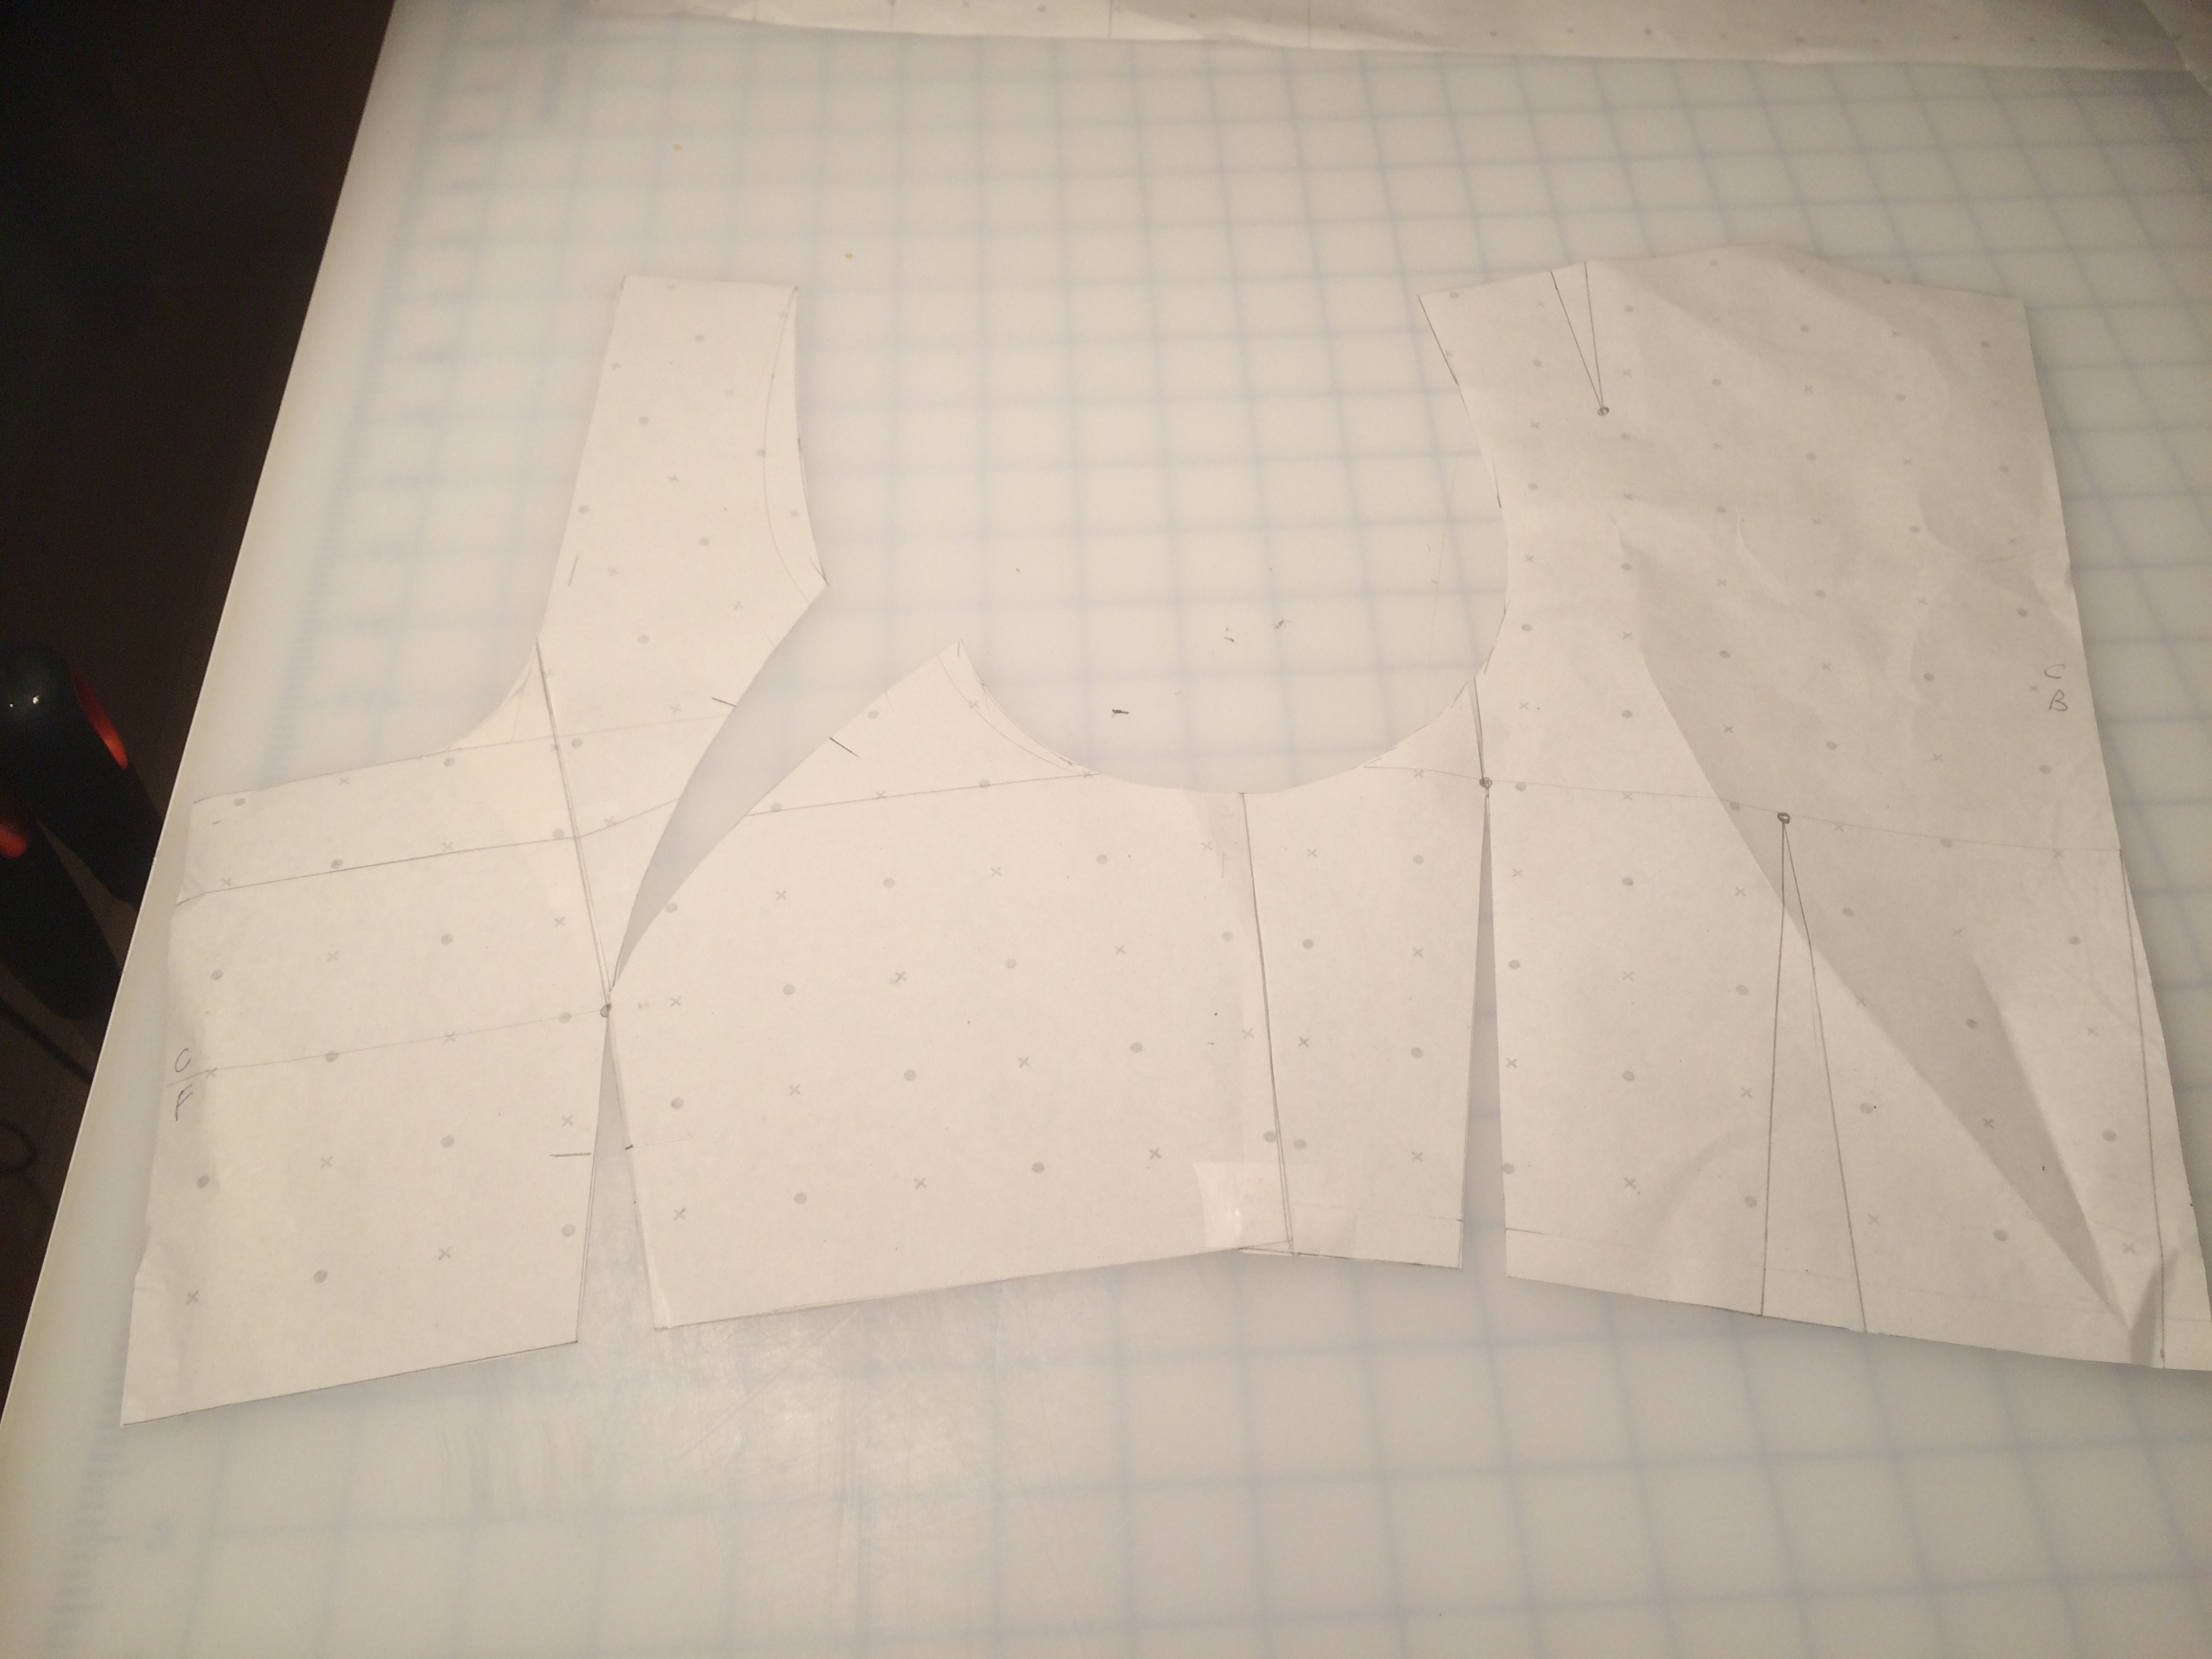 Joining the two side bodice panels to make one